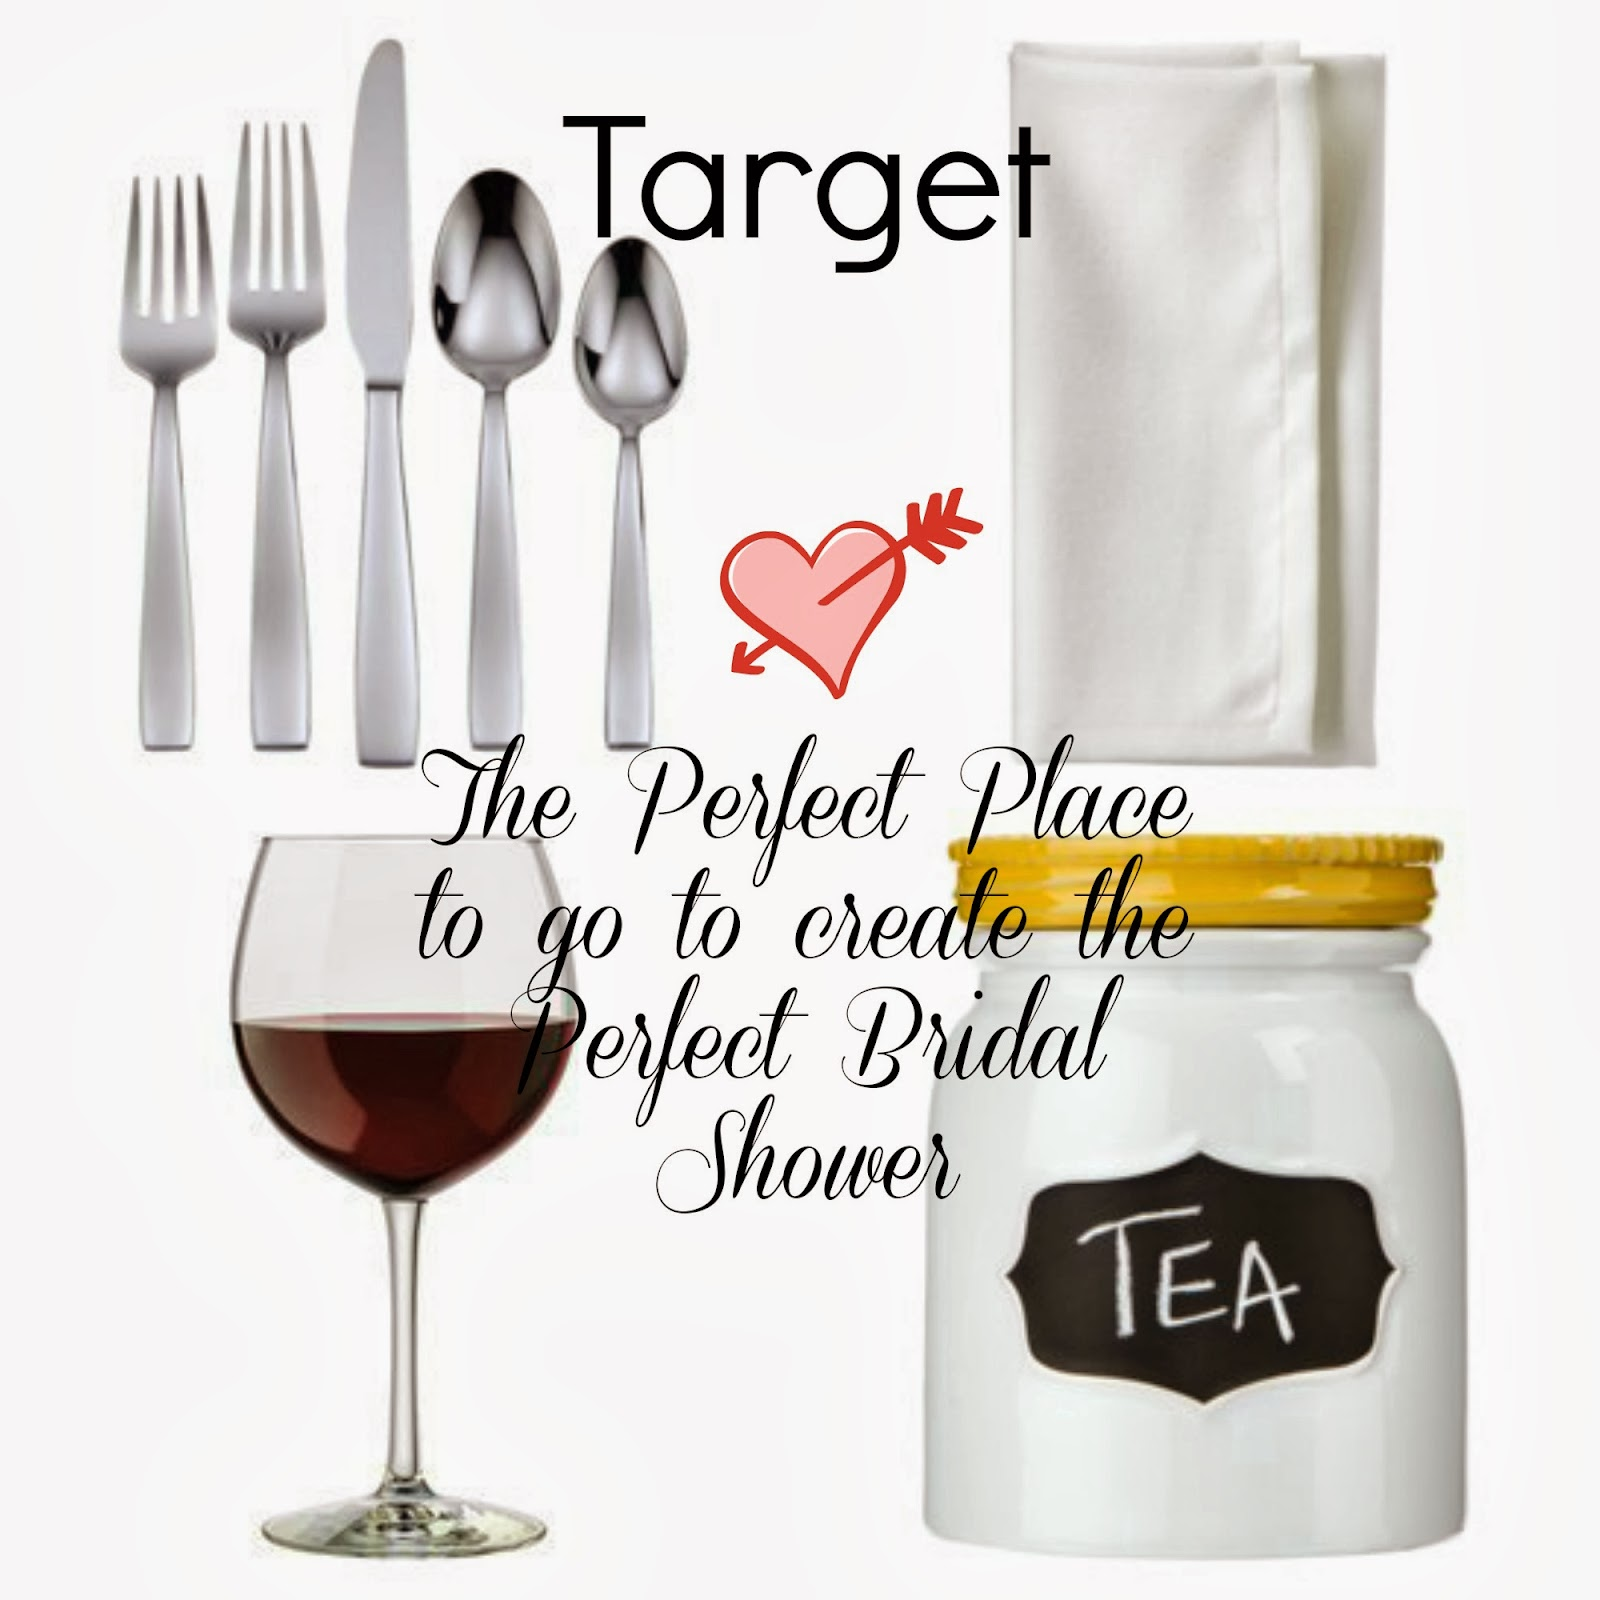 Target Wedding Gifts: The Perfect Place To Plan A